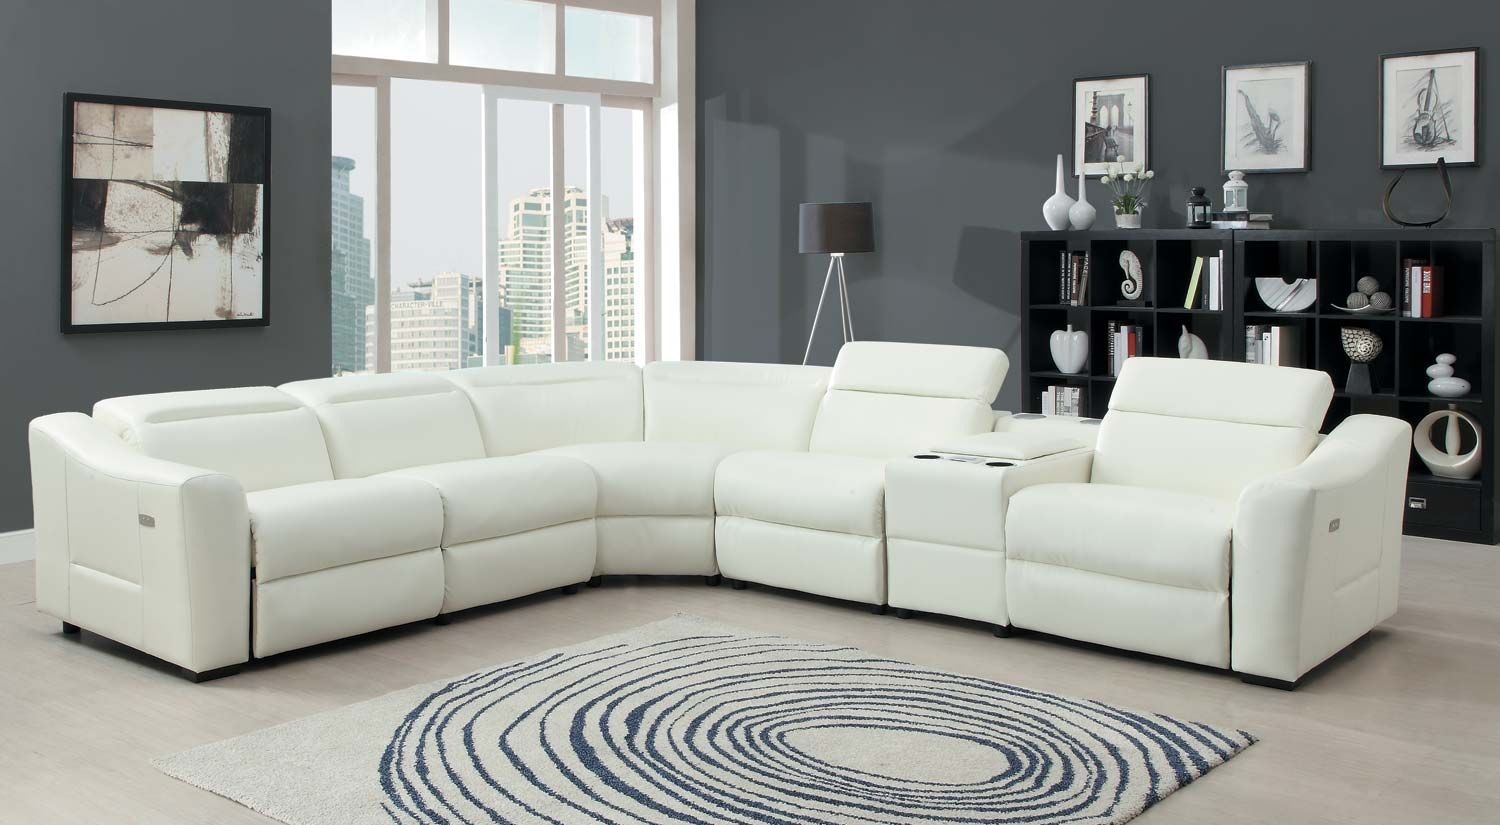 Homelegance instrumental sectional sofa set white bonded leather match the ultra modern instrumental collection will allow you your family and